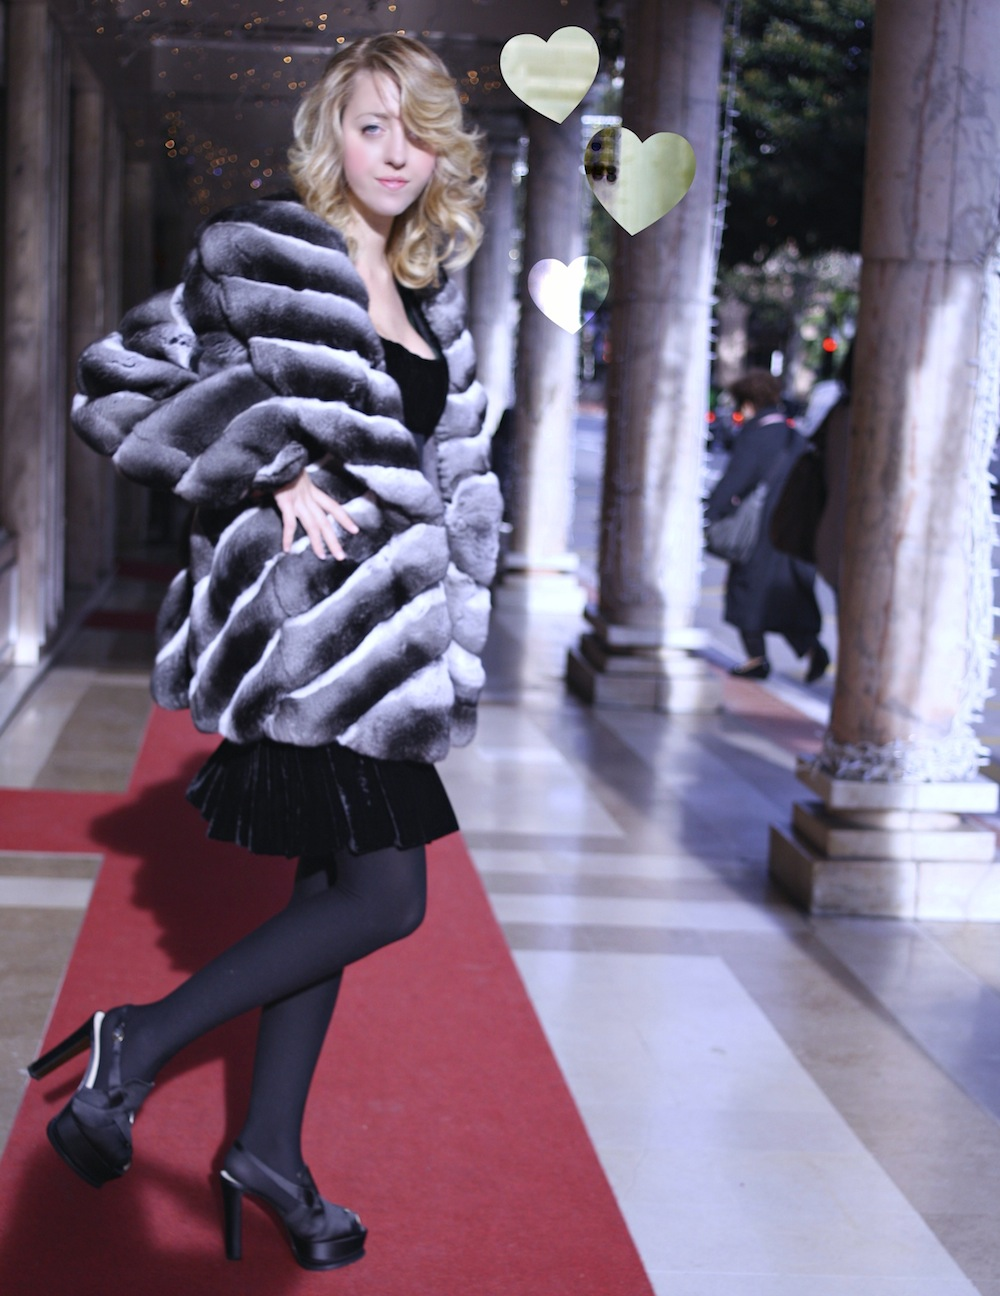 lady_fur_chinchilla_coat_monte_carlo